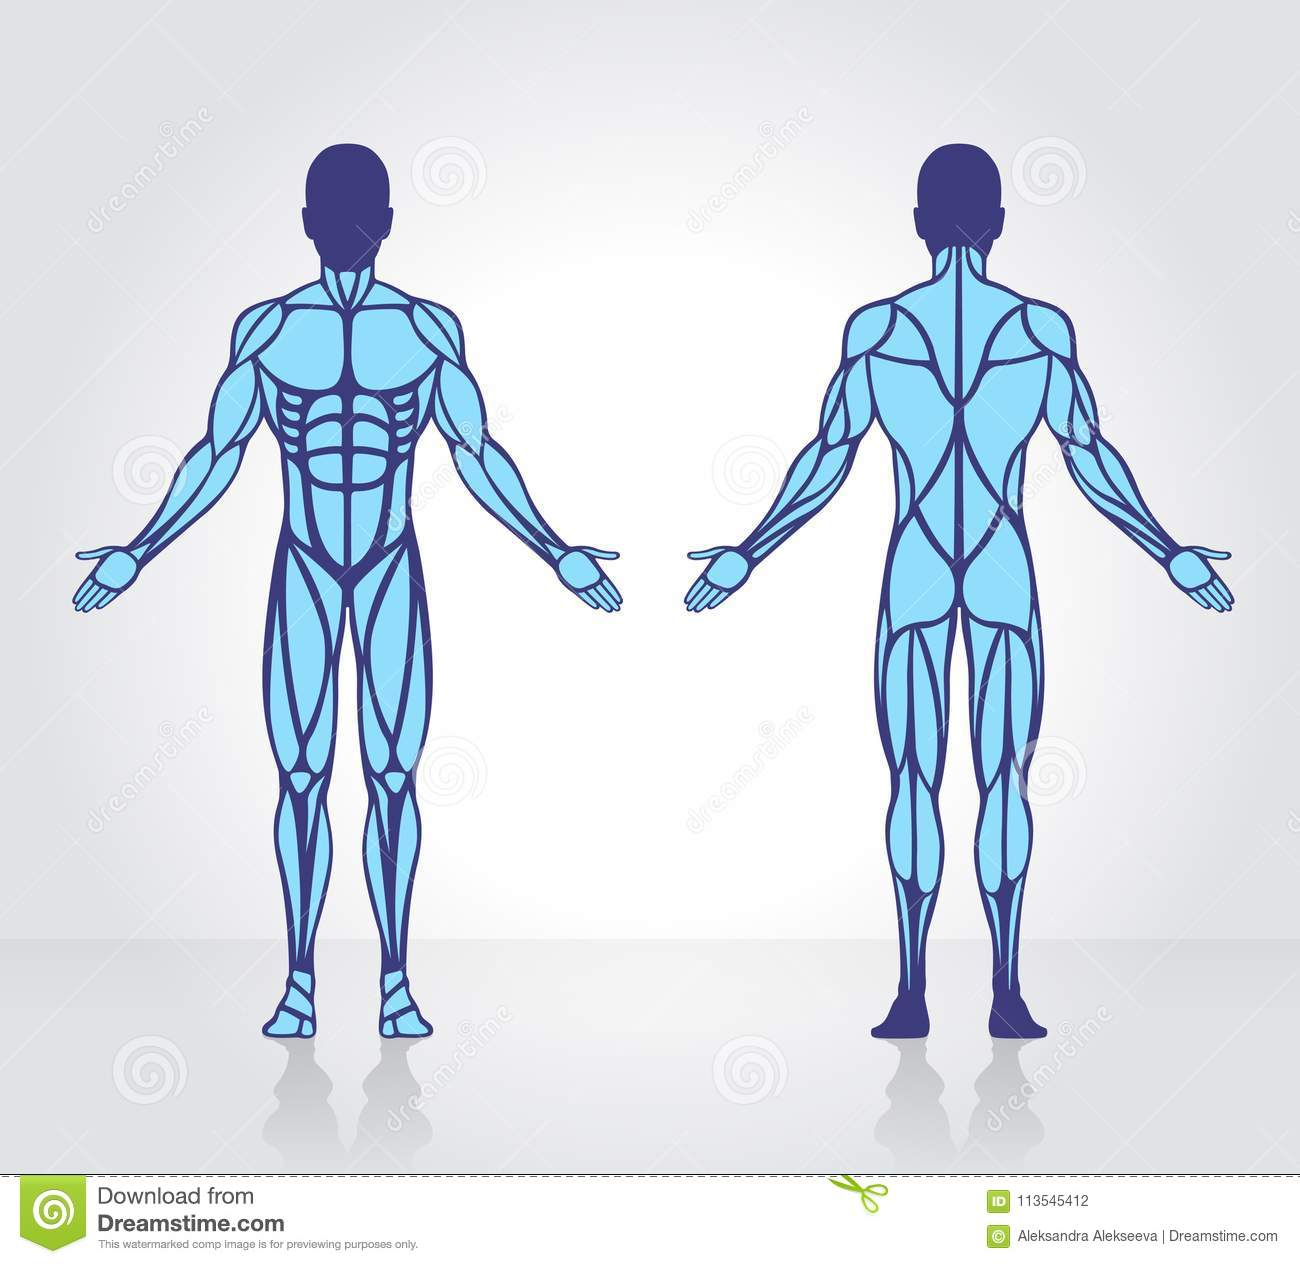 human muscles anatomy model vector stock vector illustration of legs male 113545412 https www dreamstime com human muscles anatomy model vector human muscles anatomy model vector strong man image113545412